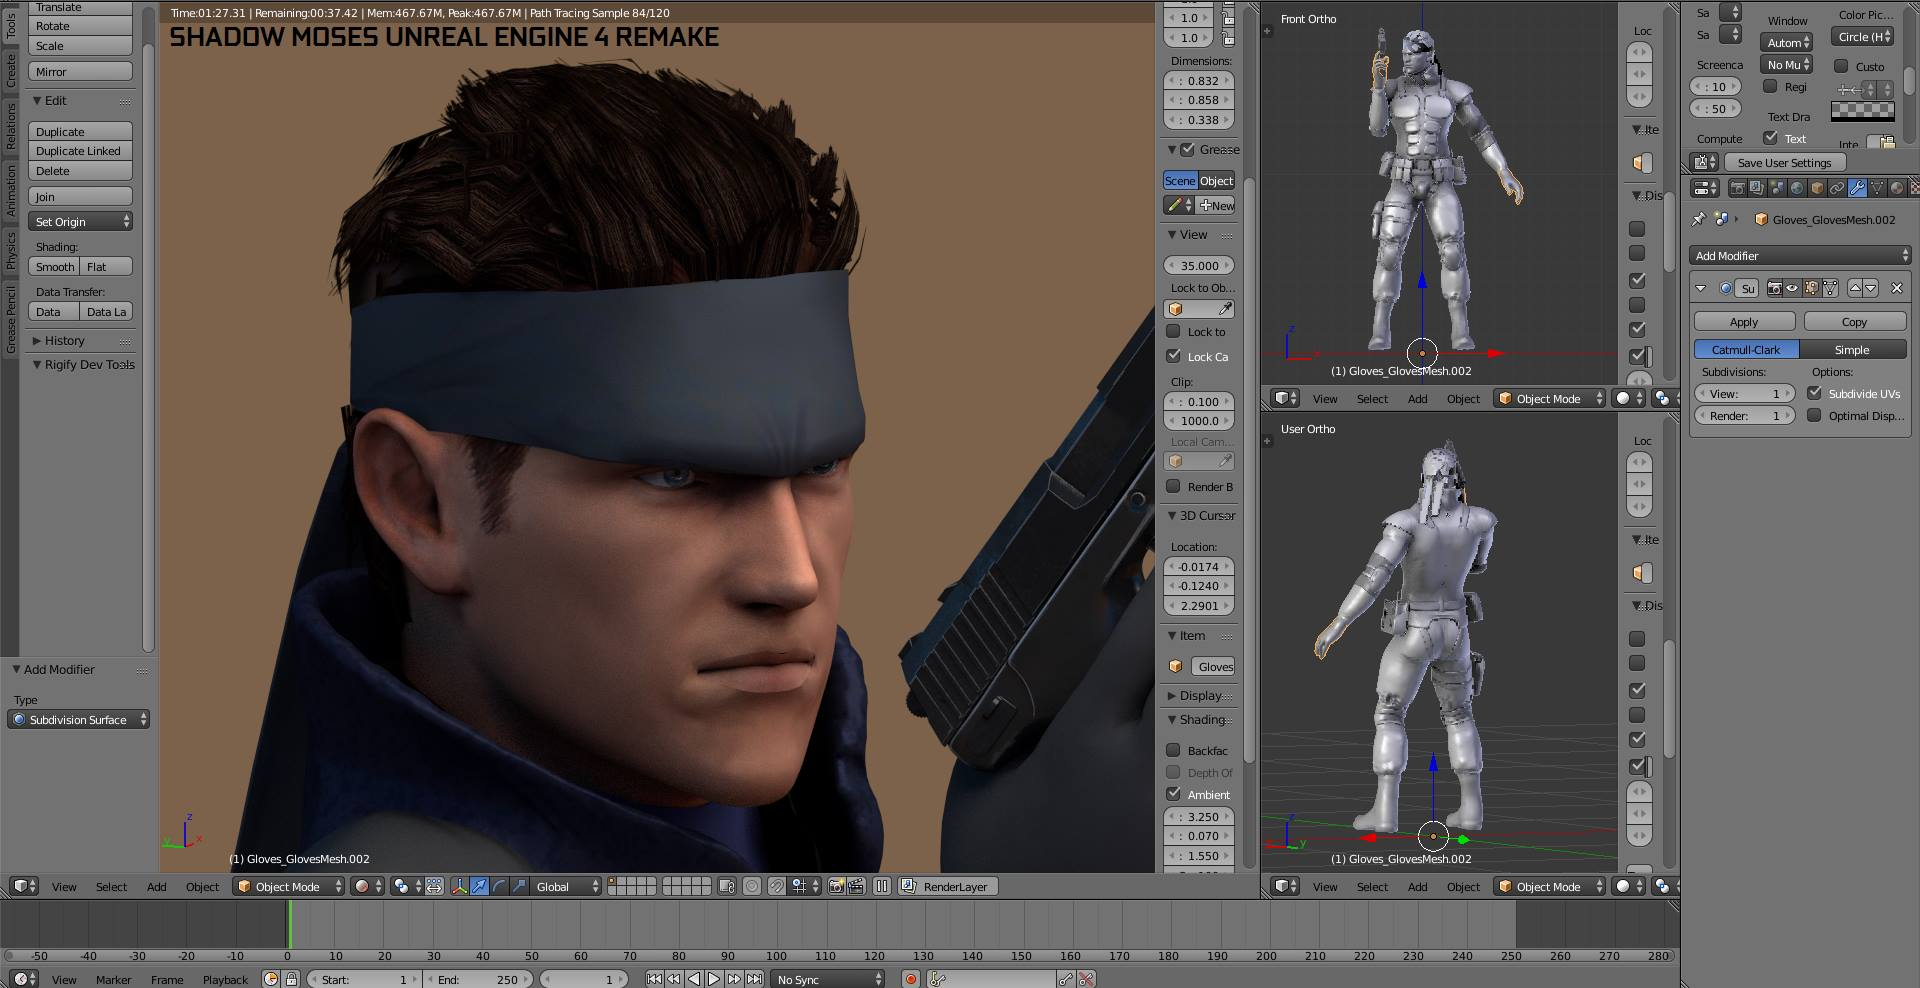 Metal Gear Solid's Shadow Moses Unreal Engine 4 Remake